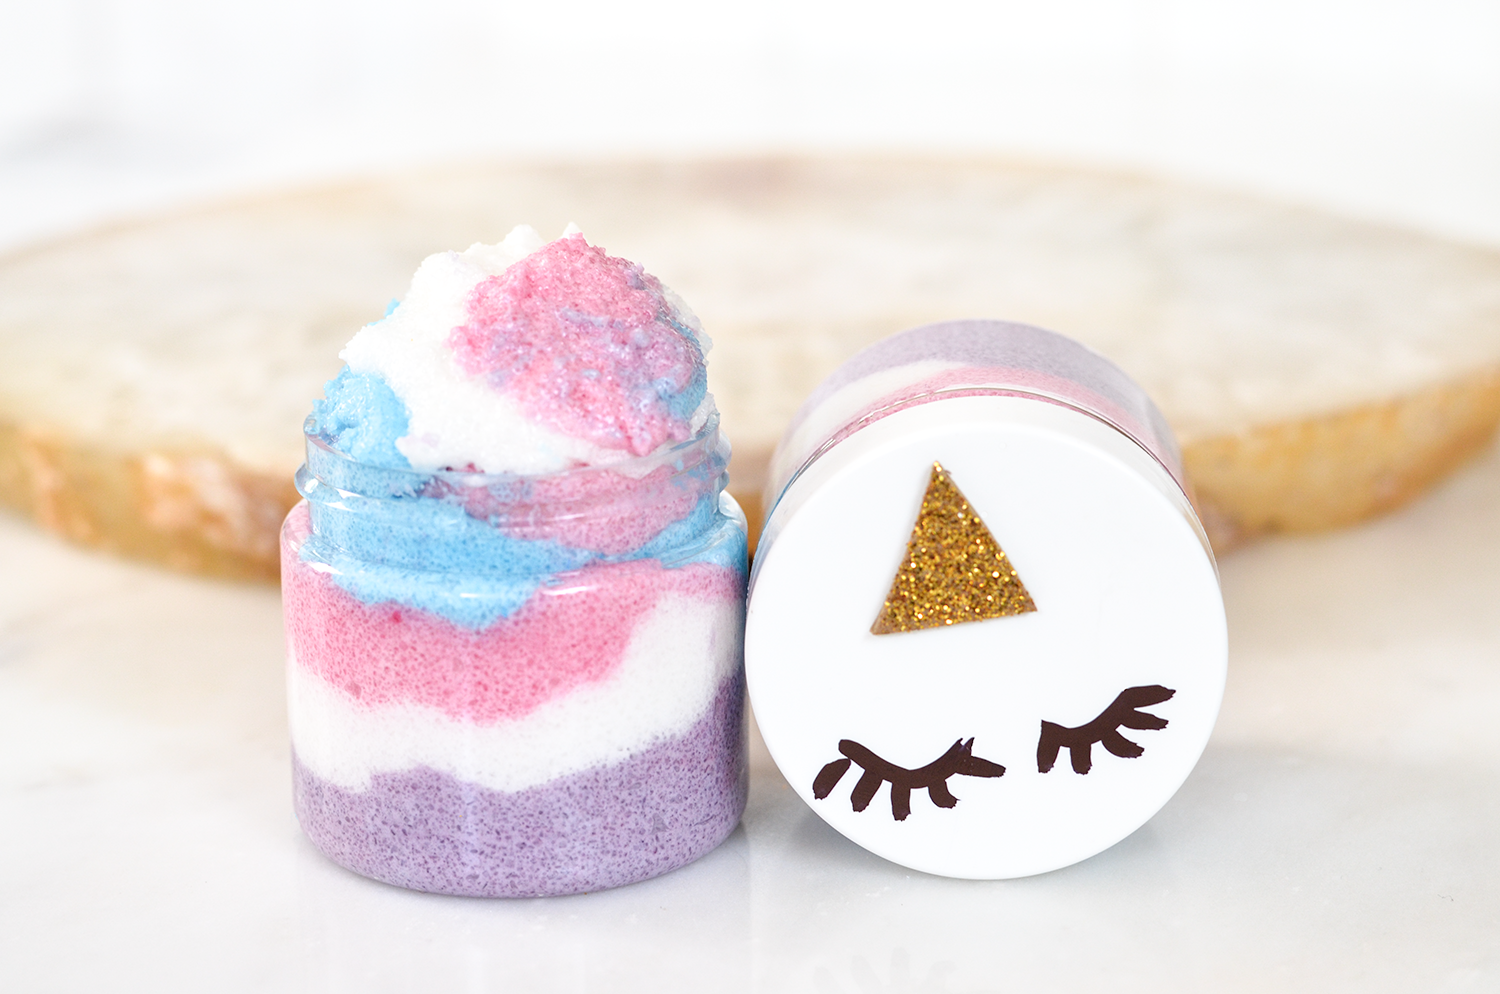 Marvelous Unicorn Sugar Scrub Recipe